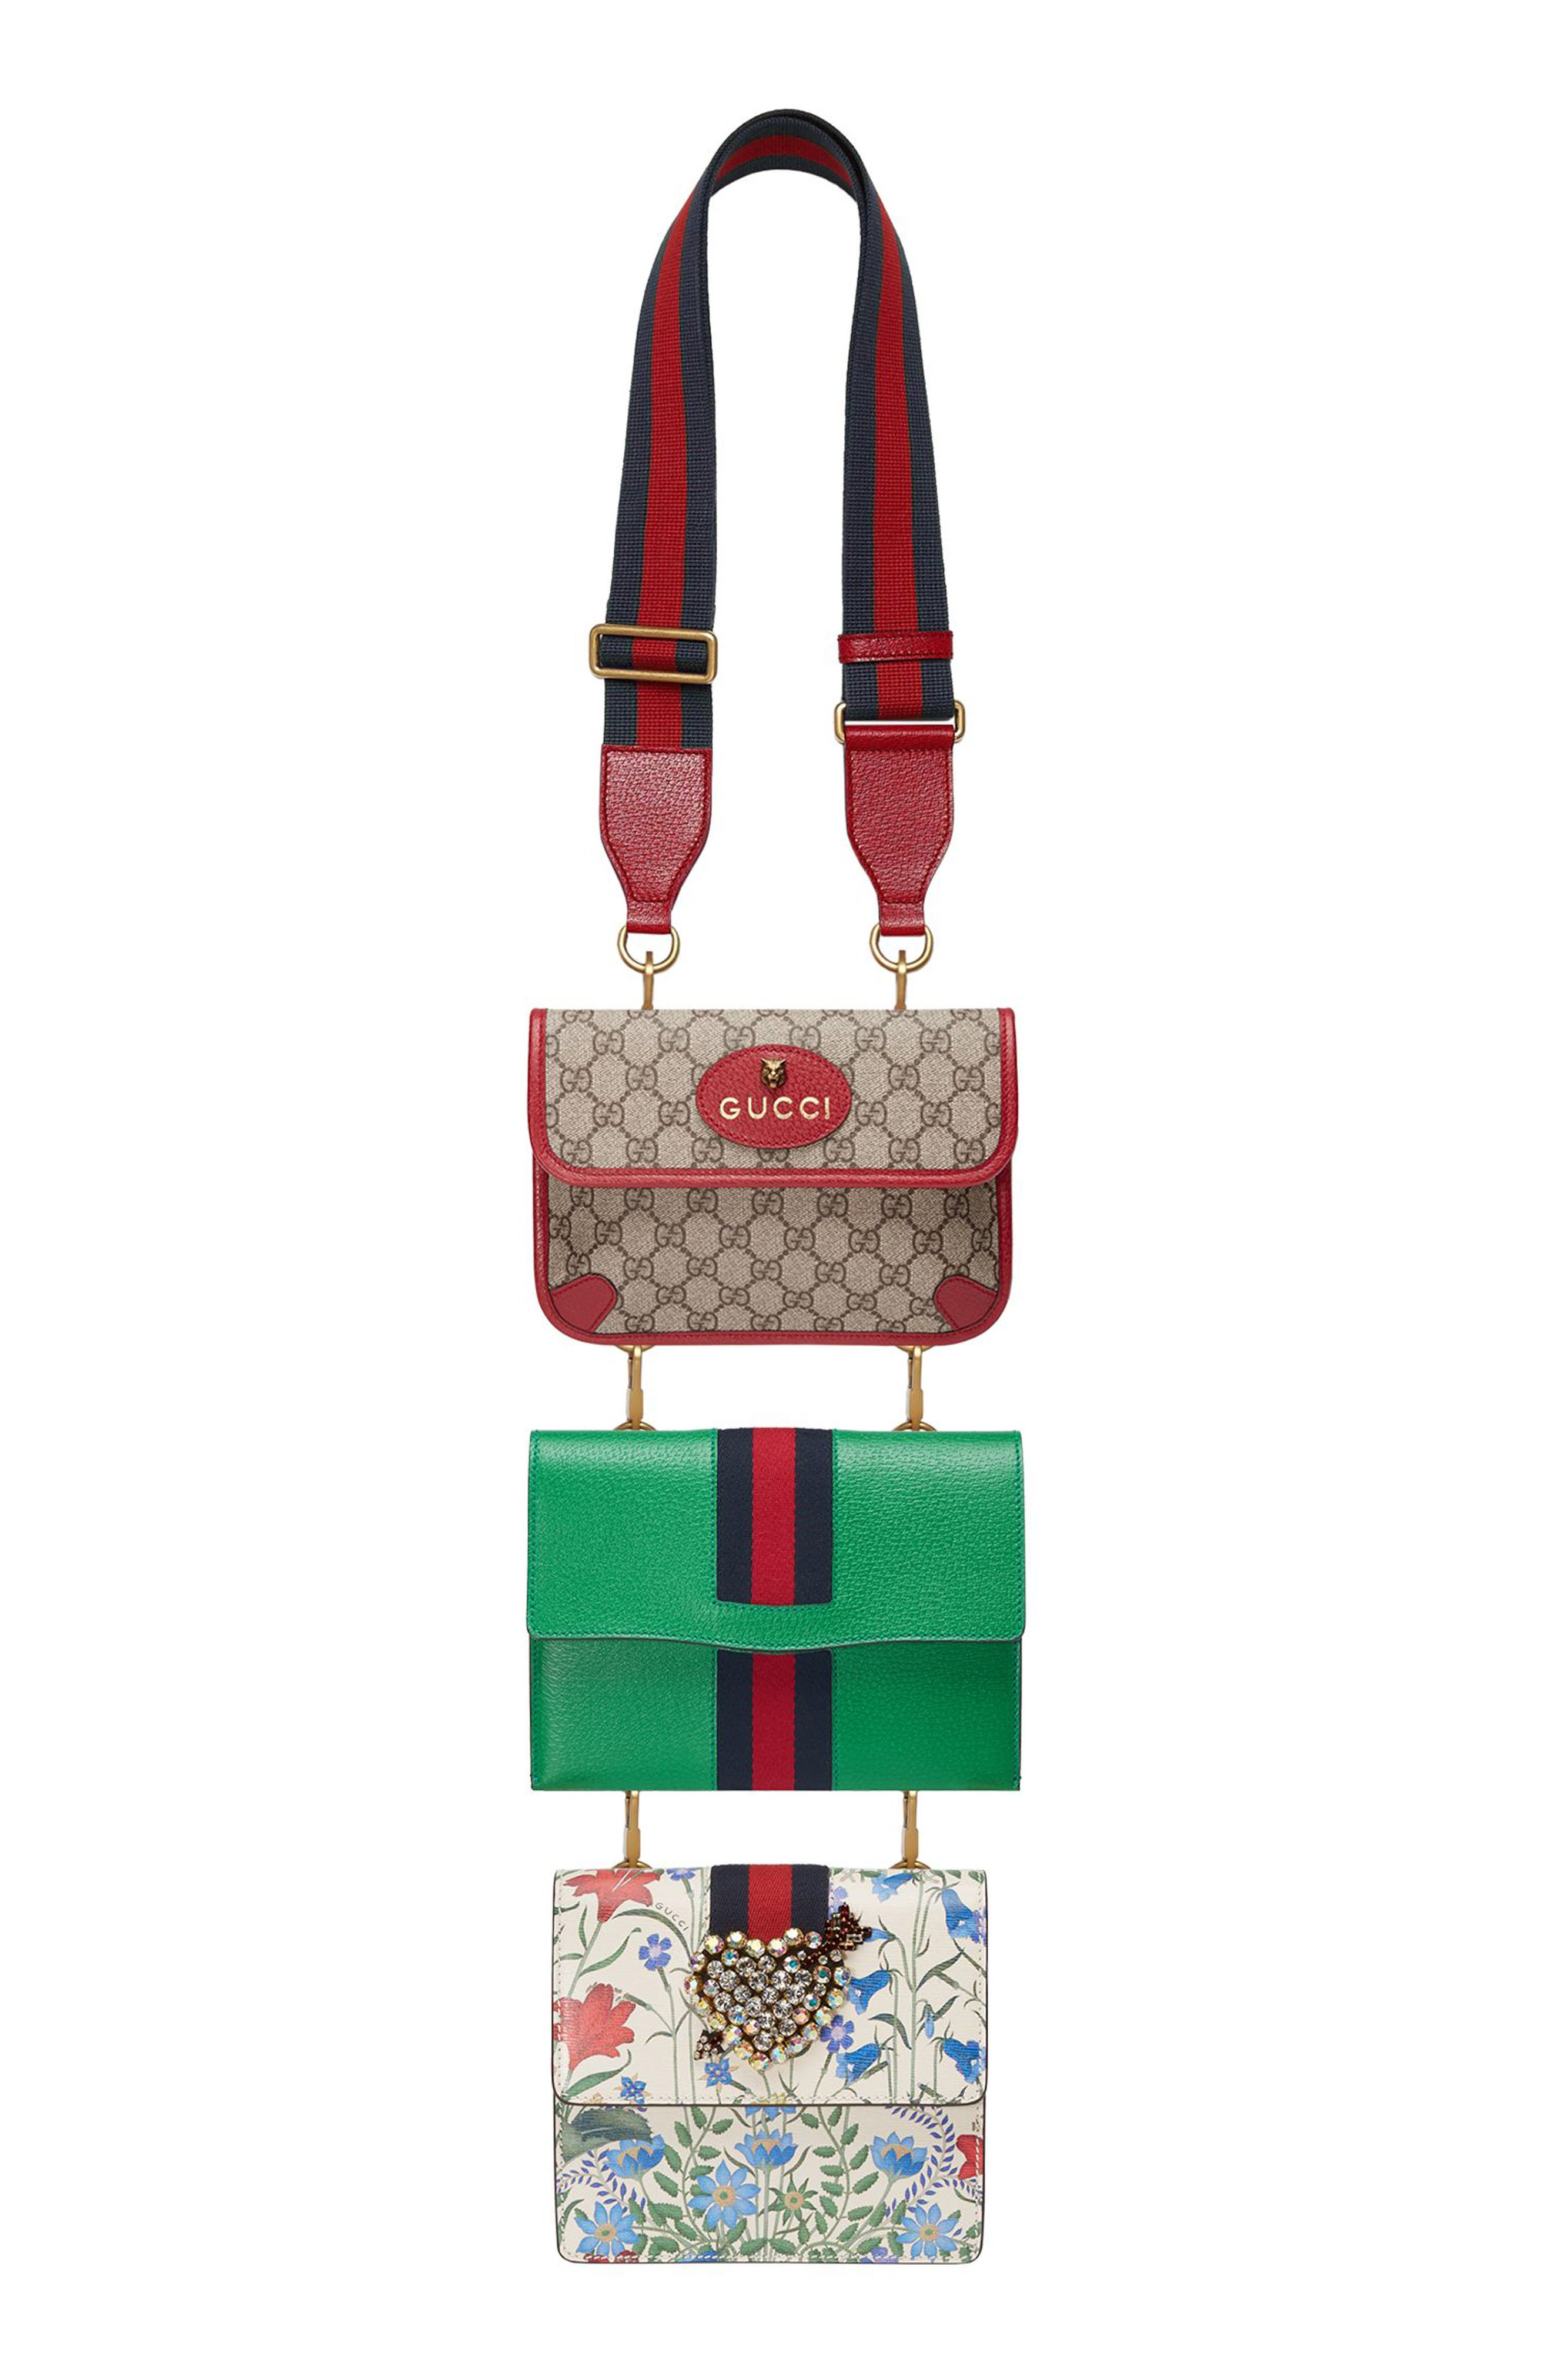 Totem Four-in-One Leather & Canvas Shoulder Bag,                         Main,                         color, Brown/ Green/ Red